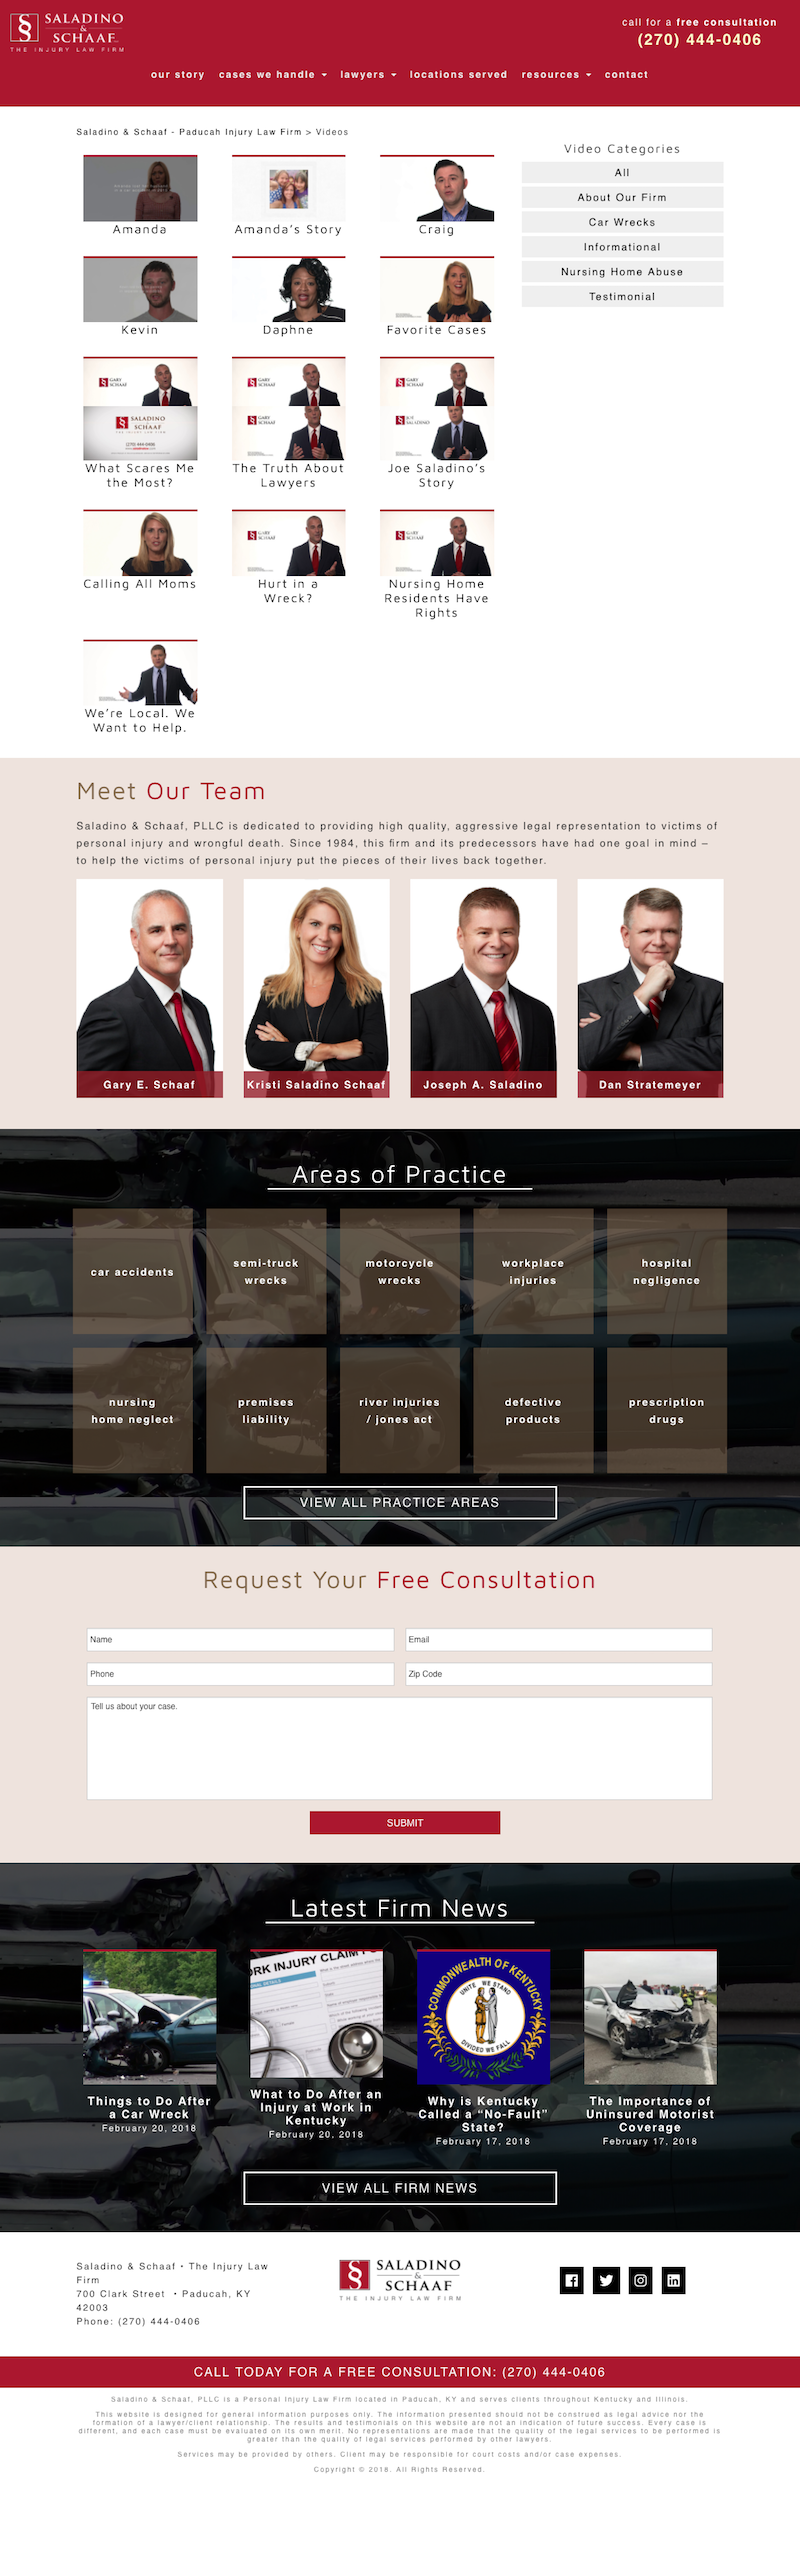 Personal Injury Attorney Website - Saladino & Schaaf